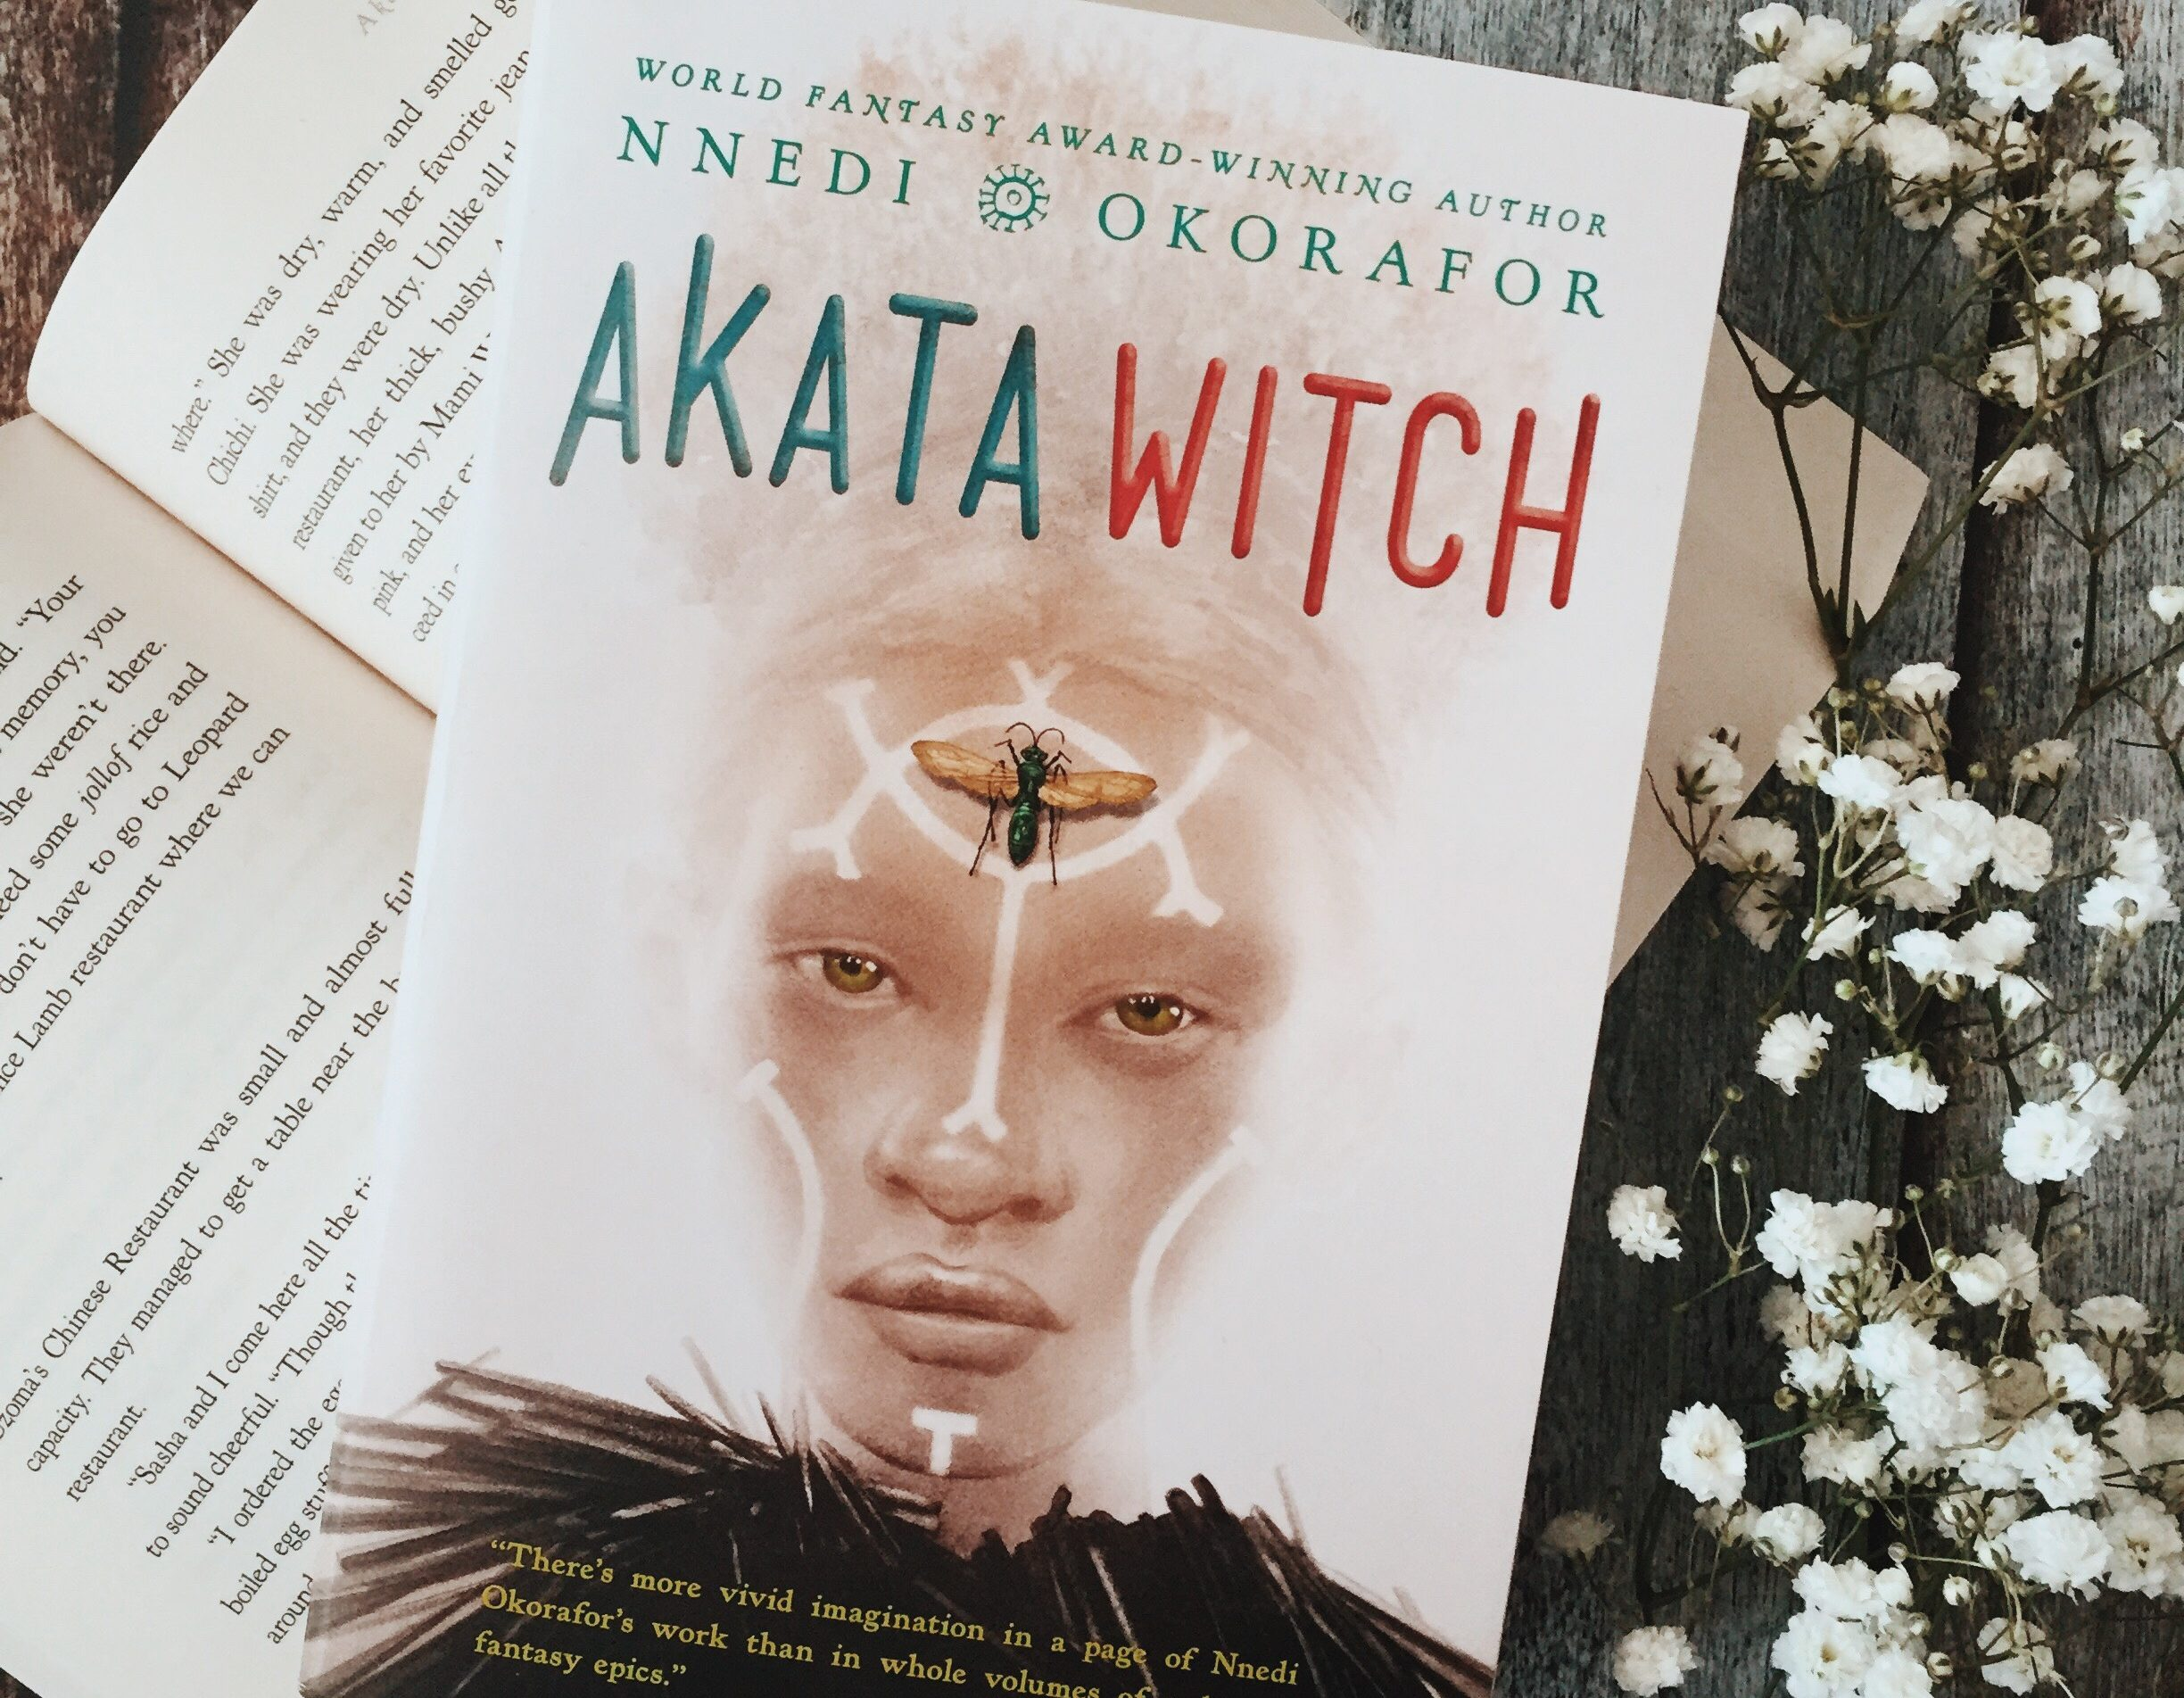 AKATA WITCH EPUB DOWNLOAD